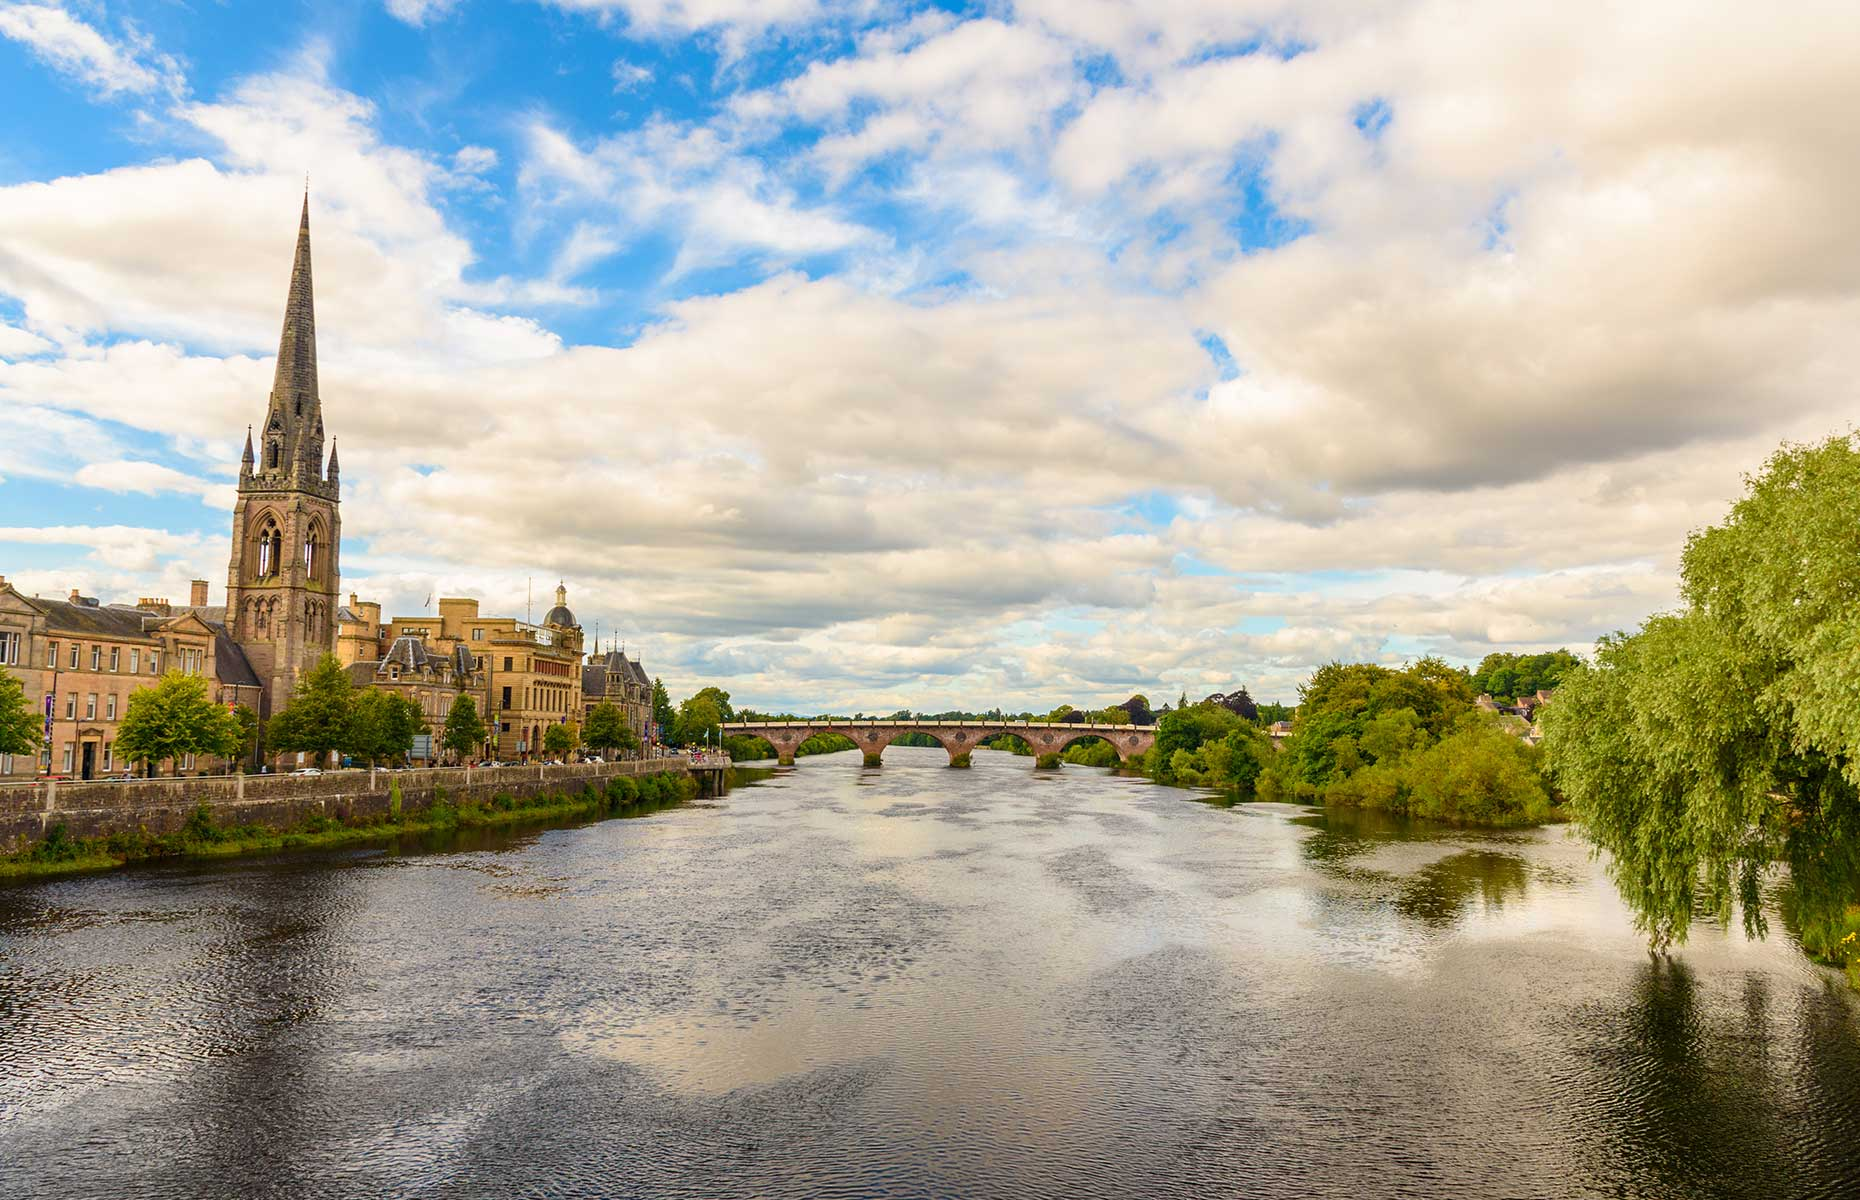 City of Perth, Scotland, a stop on the Heart 200 road trip route (Image: Marco Bicci/Shutterstock)